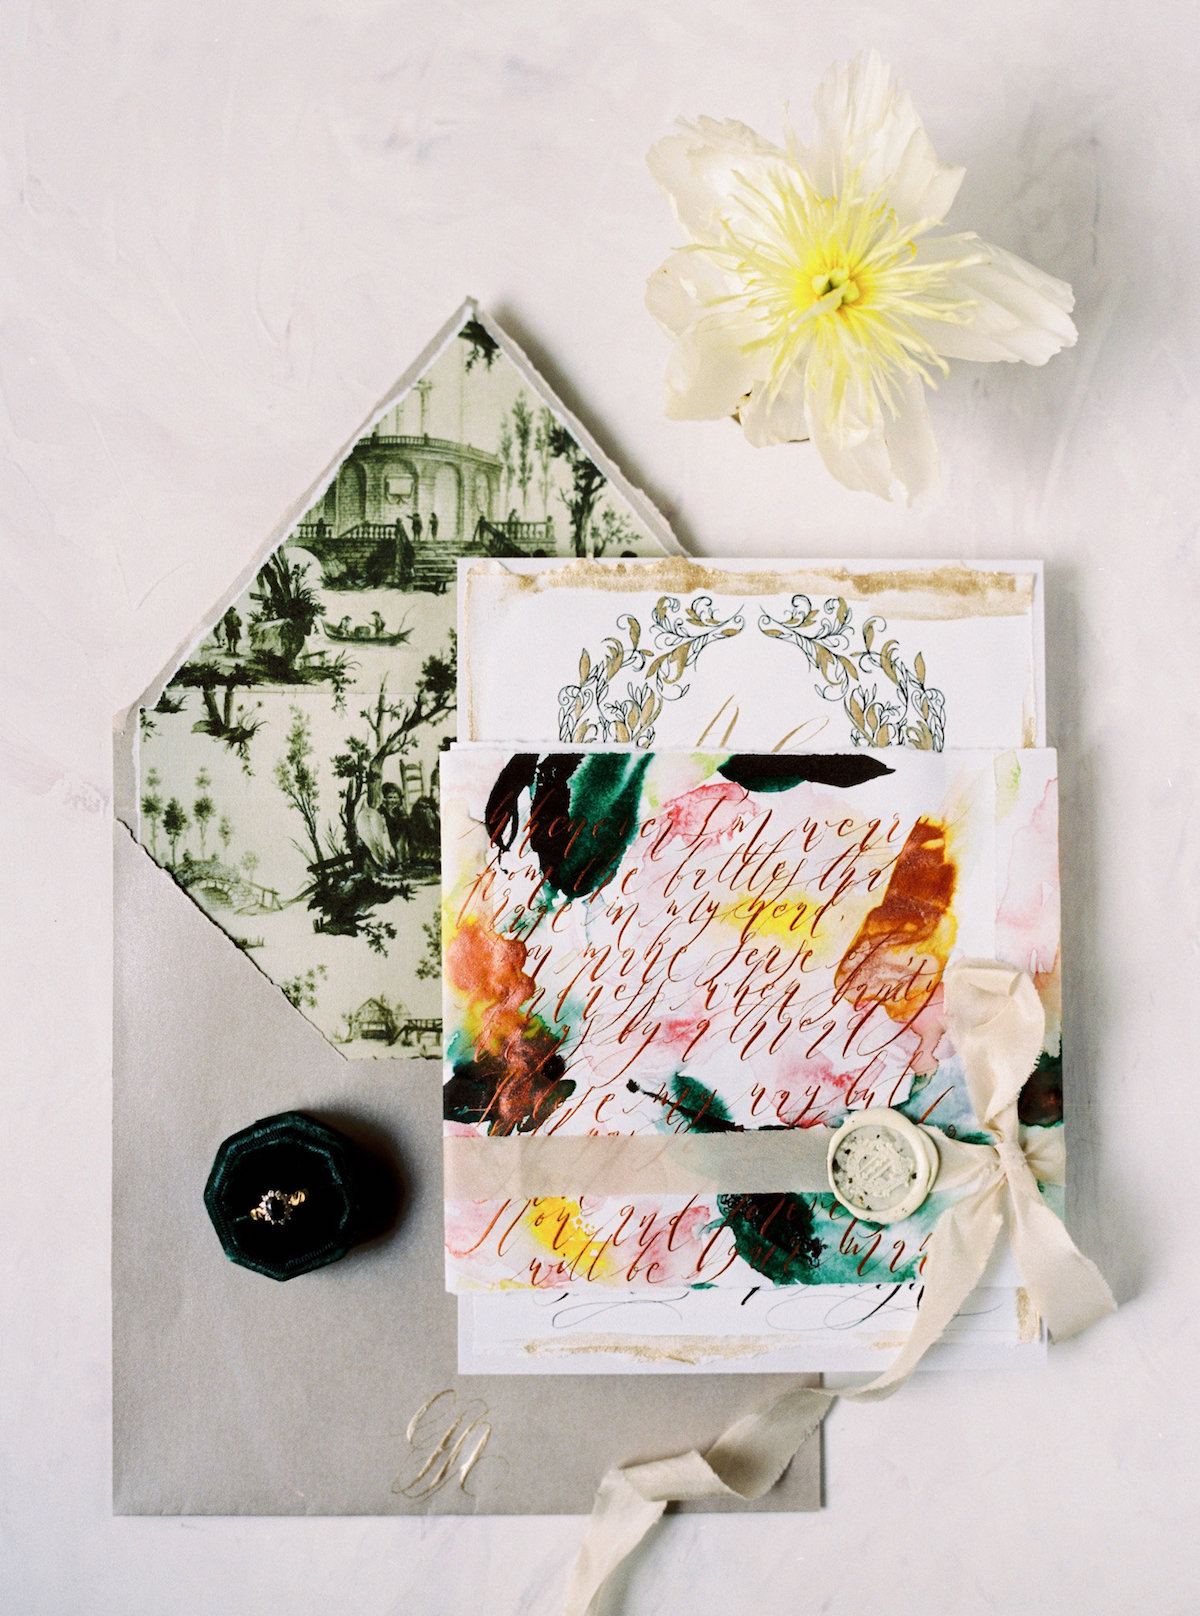 Latest Wedding invitation trends for 2019 - Invitation suite with wrap and gold invitation